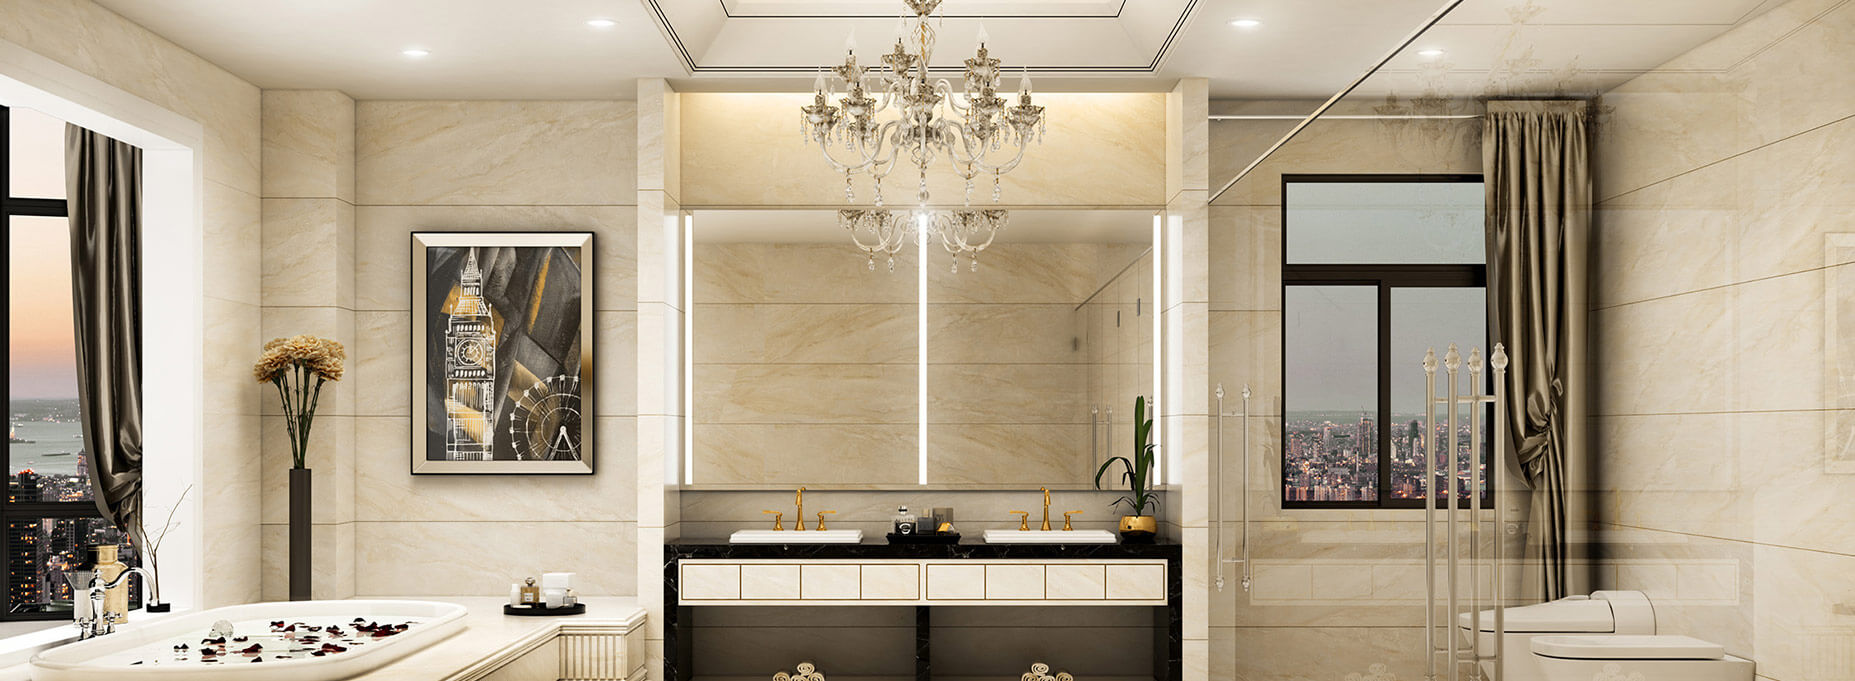 Traditional bathroom with sophisticated lighted mirrors in the center.